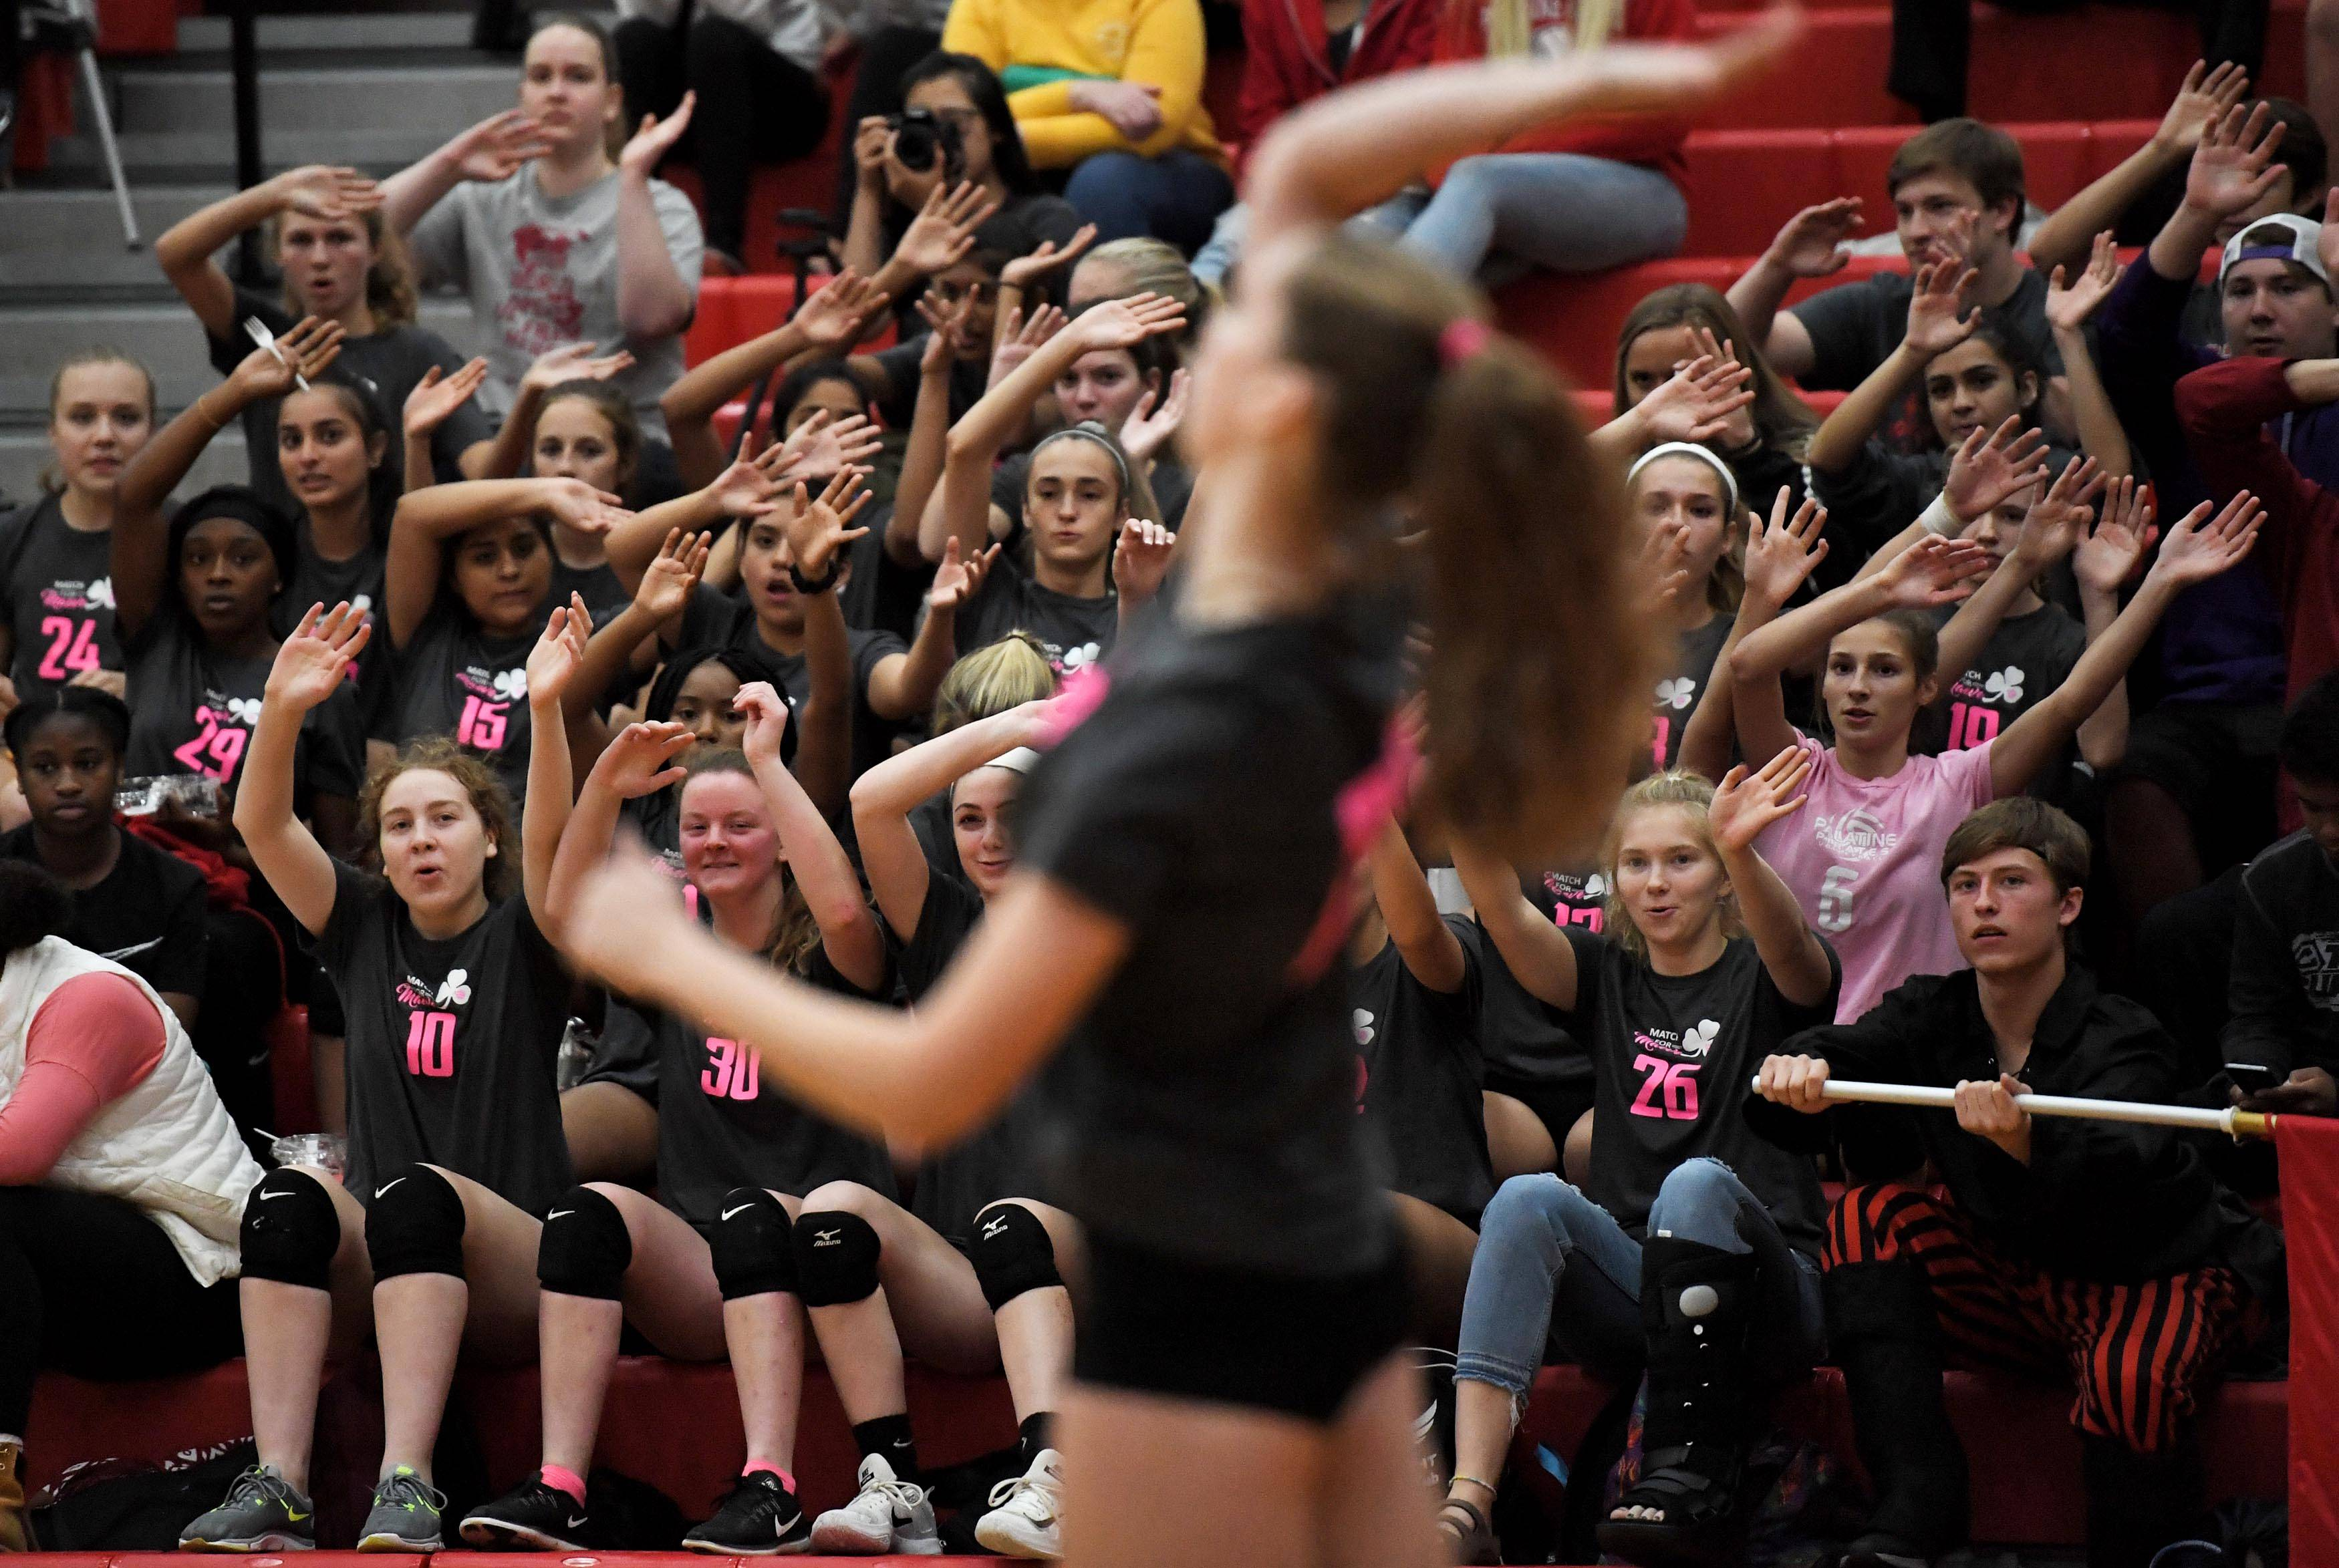 The home crowd supports Palatine's Emily Campe as she serves against Fremd Thursday in a girls volleyball match at Palatine High School.